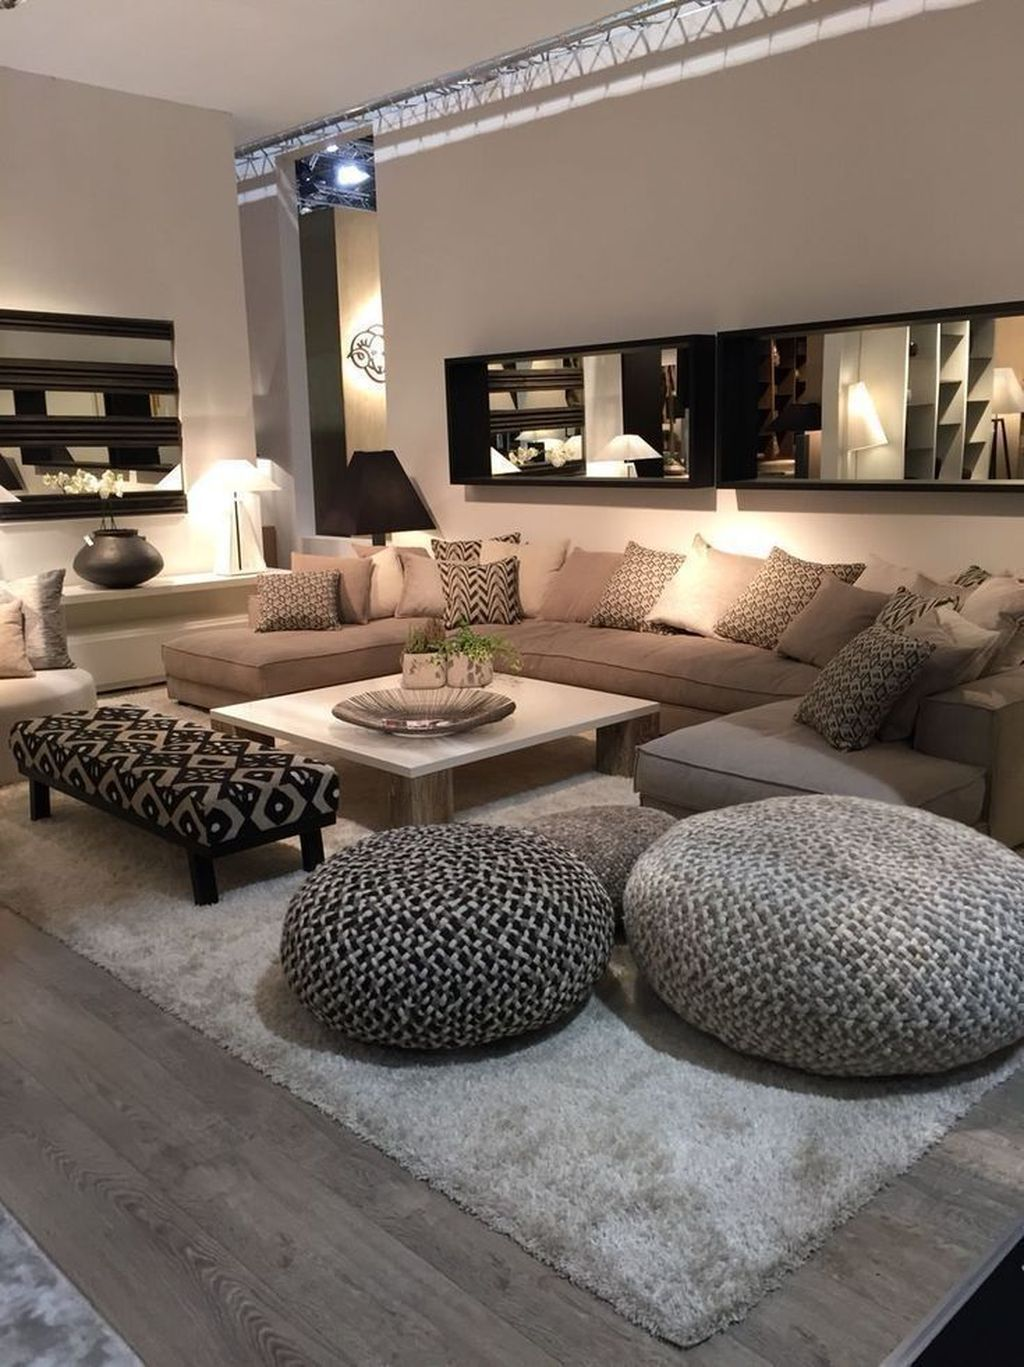 31 Admirable Modern Living Room Design Ideas You Should Copy In 2020 Small Living Room Decor Trendy Living Rooms Farm House Living Room